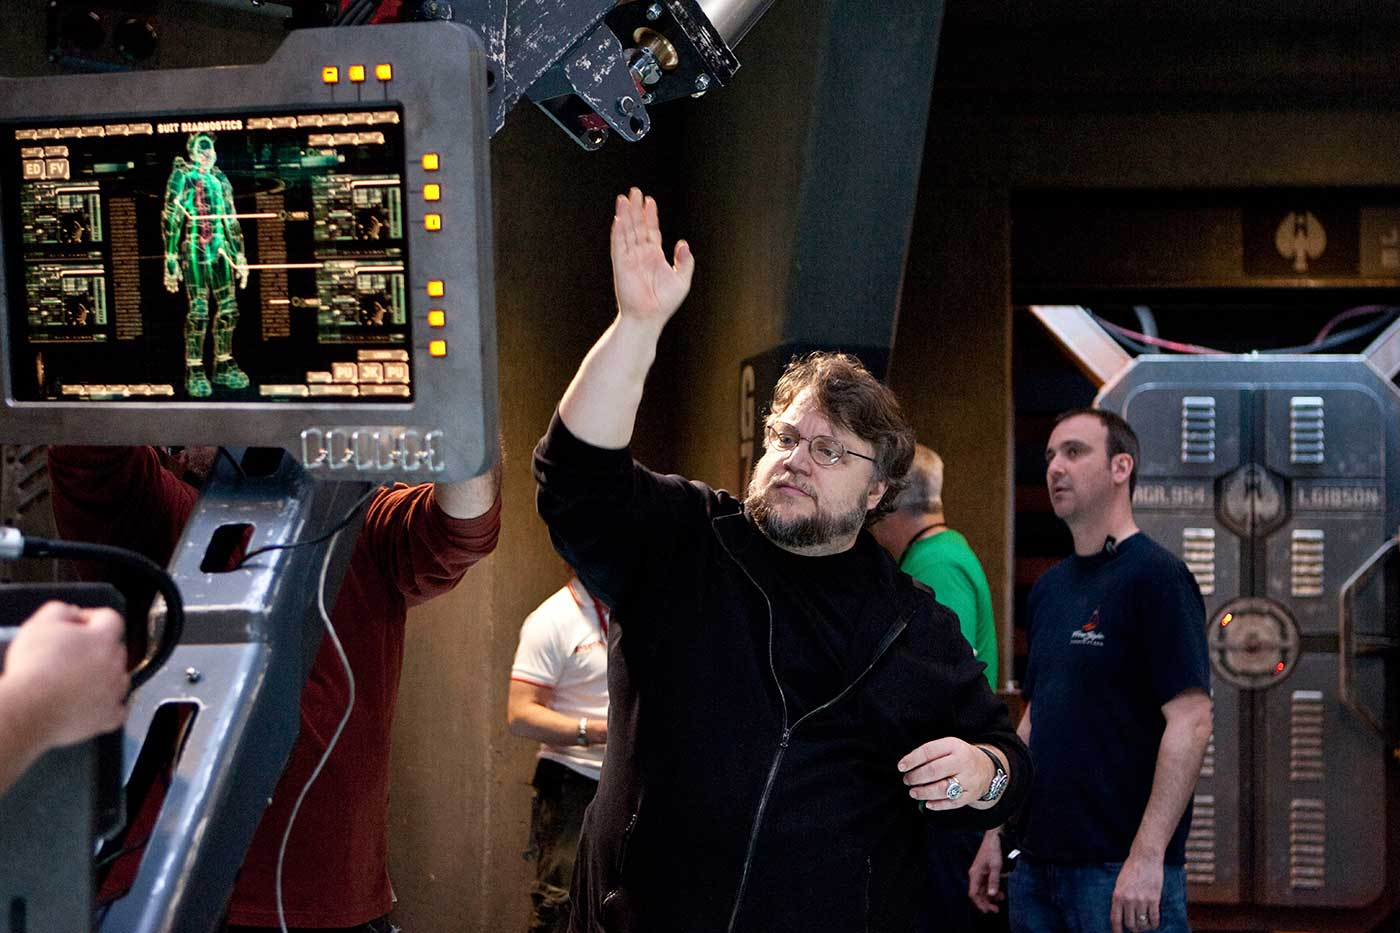 Giant robots and kaiju (Japanese monsters) collided in the 2013 film, which featured elaborate creations by Industrial Light & Magic and Legacy Effects. Director Guillermo del Toro is seen here during production.